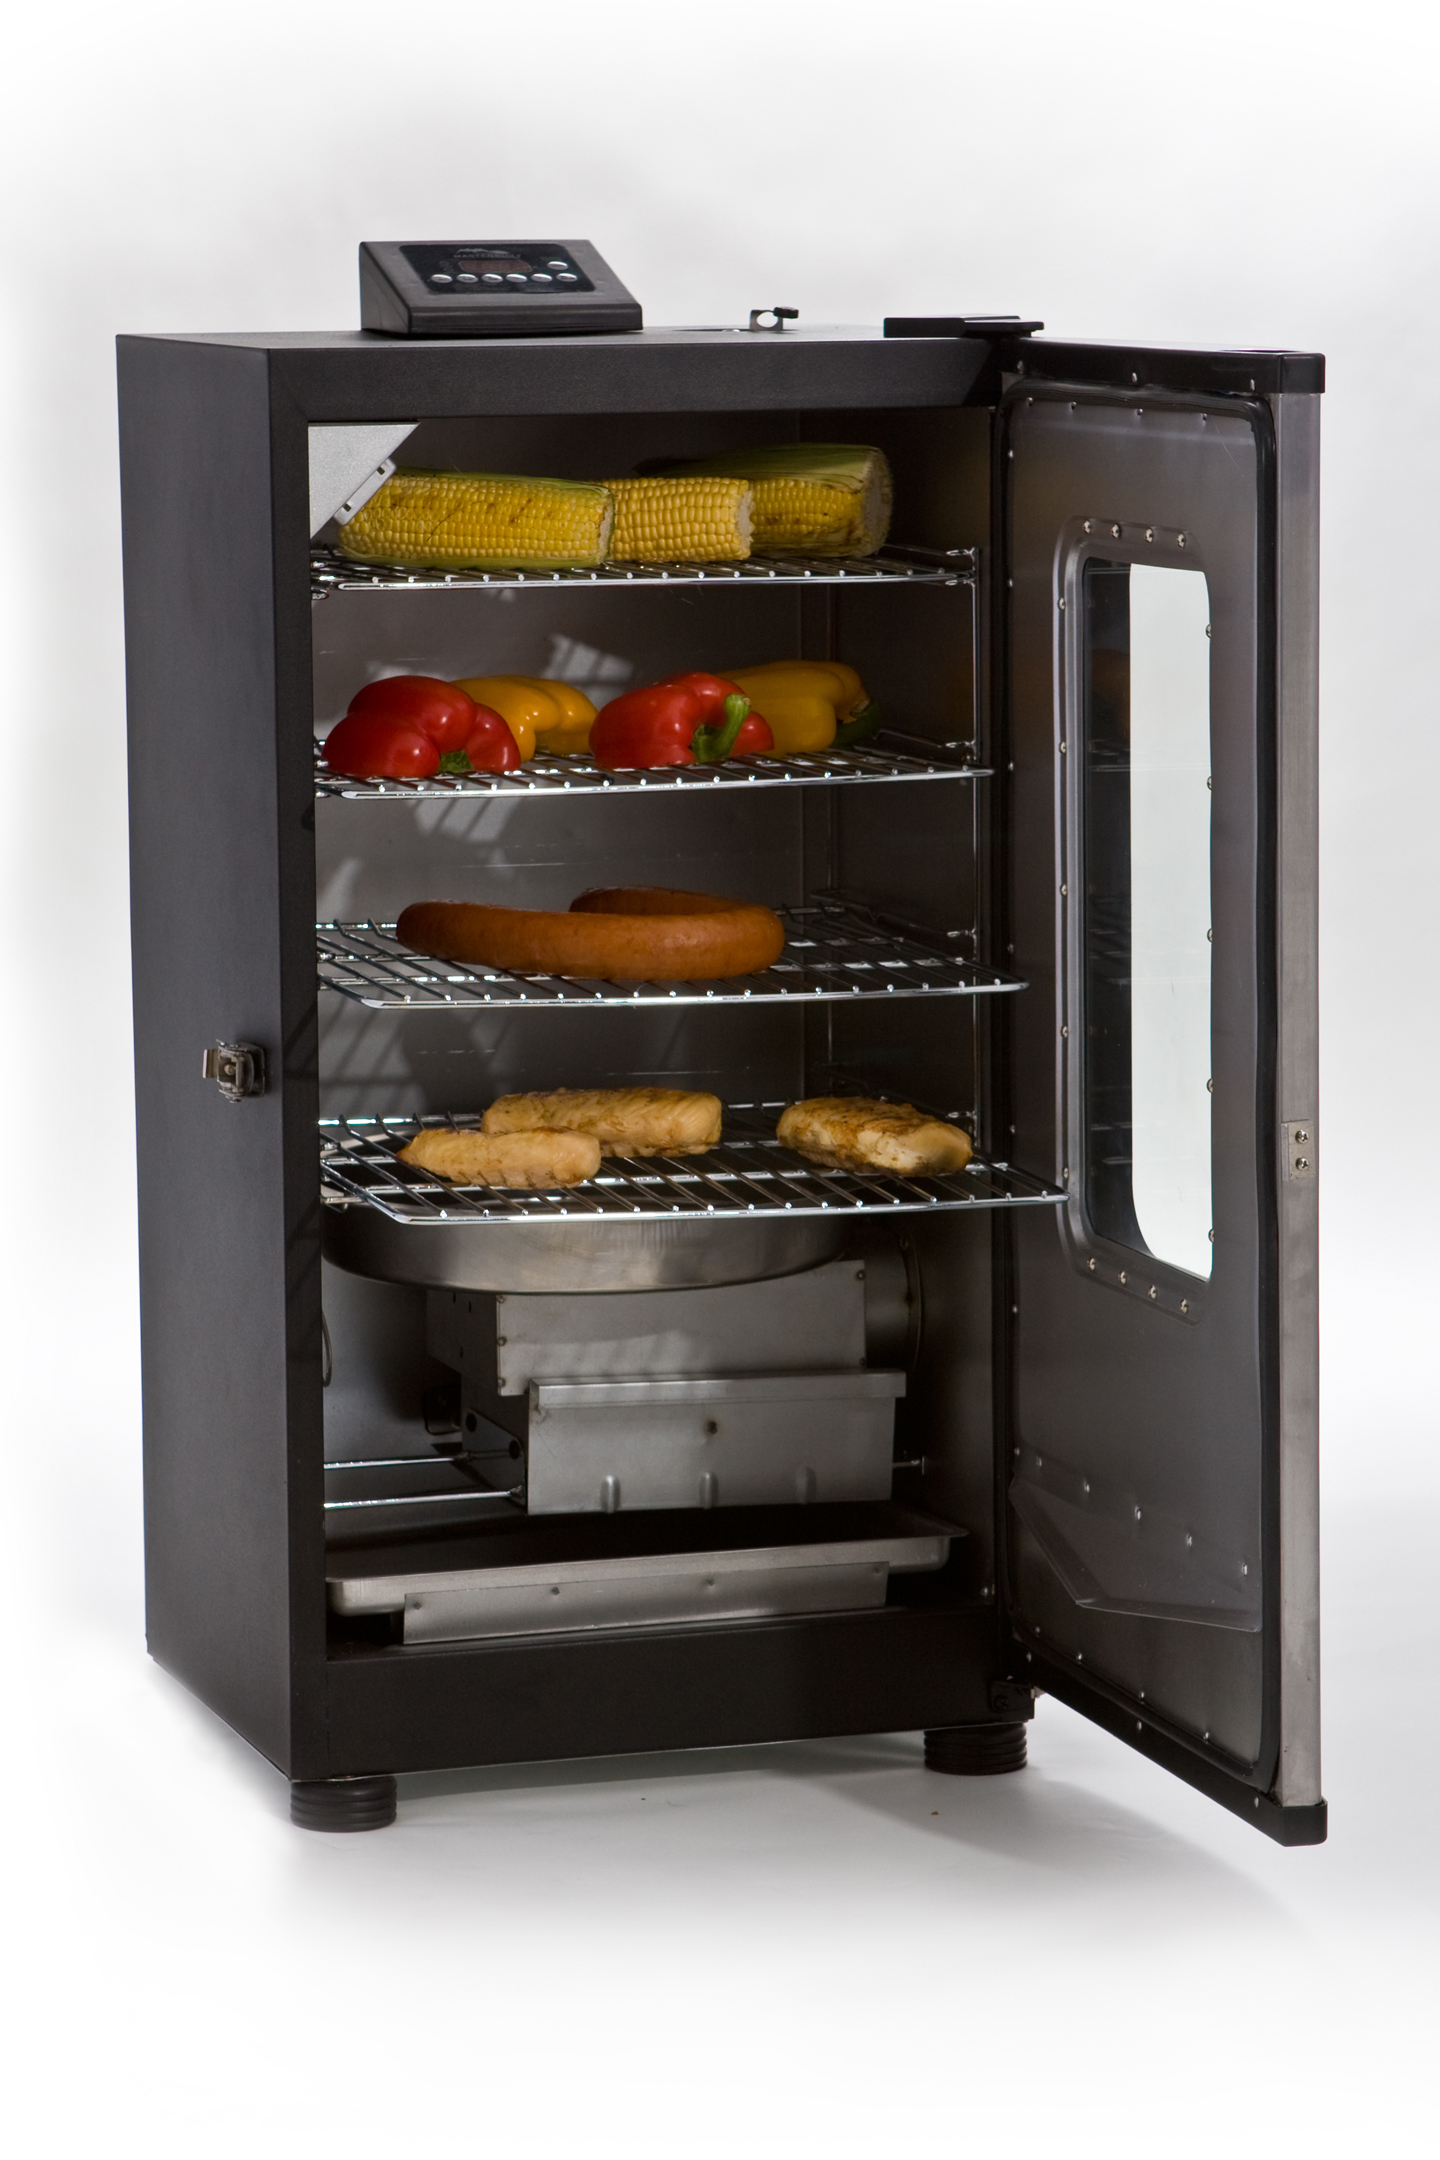 Add different flavors to your smoked food with electric for Smoking fish electric smoker